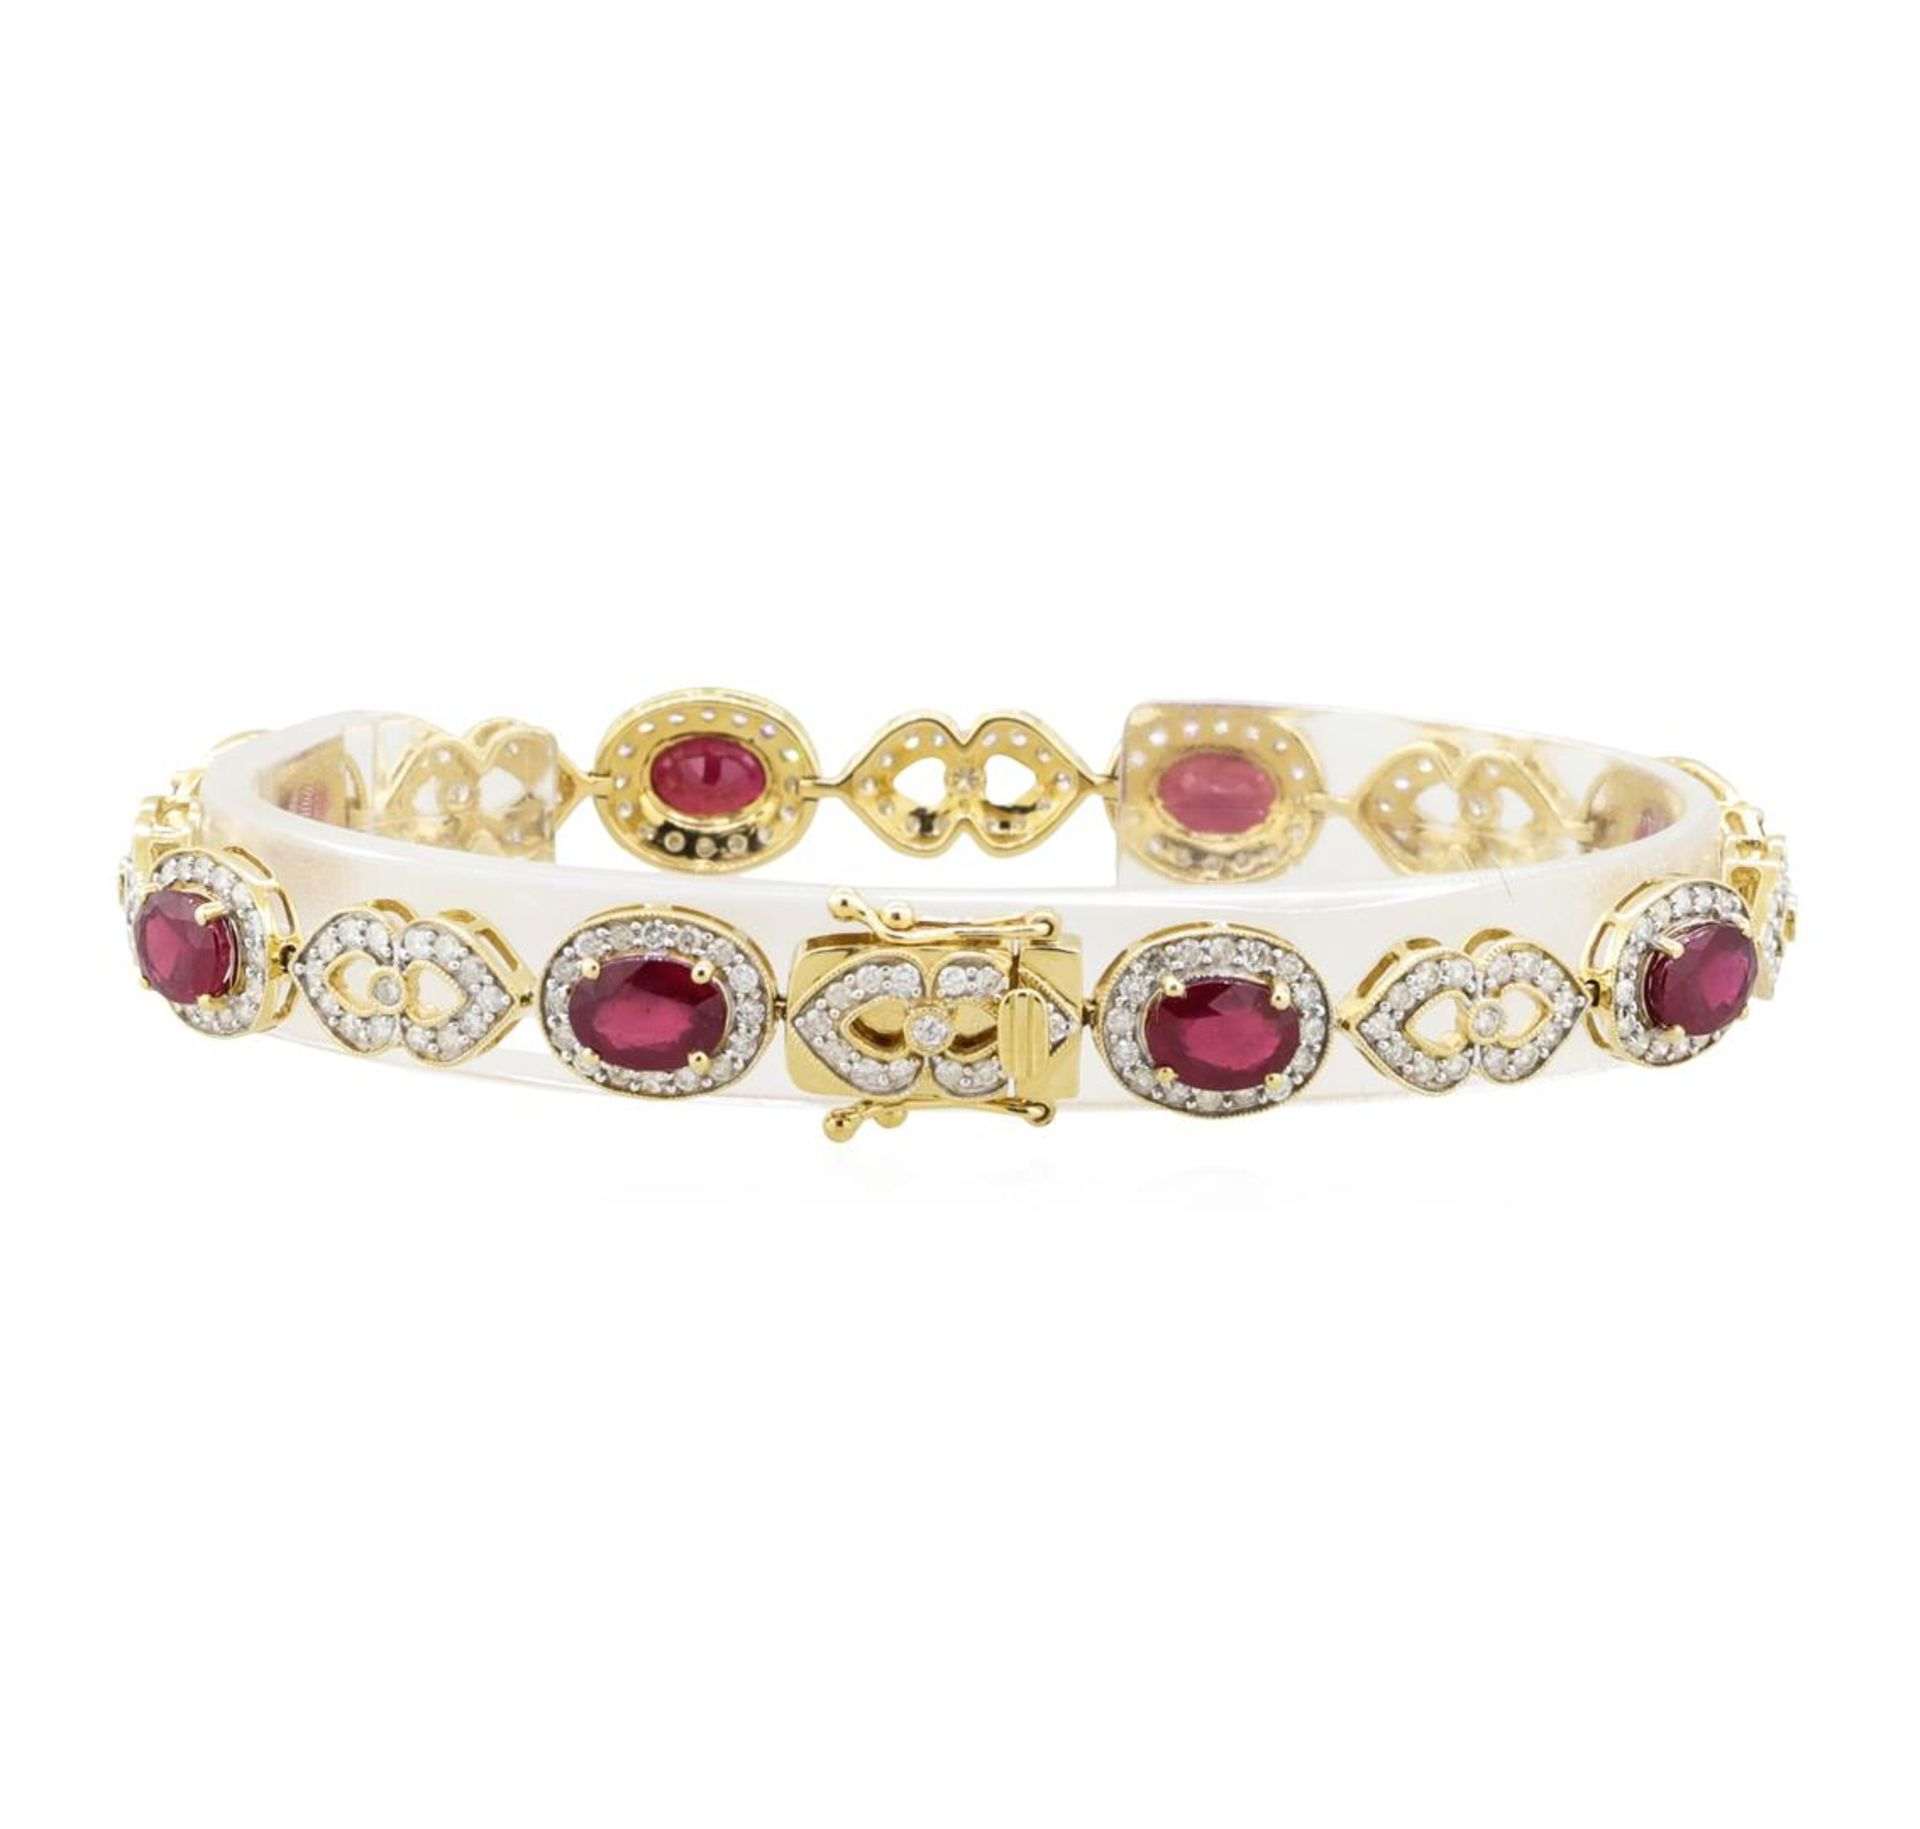 9.32 ctw Ruby and Diamond Bracelet - 14KT Yellow Gold - Image 2 of 3